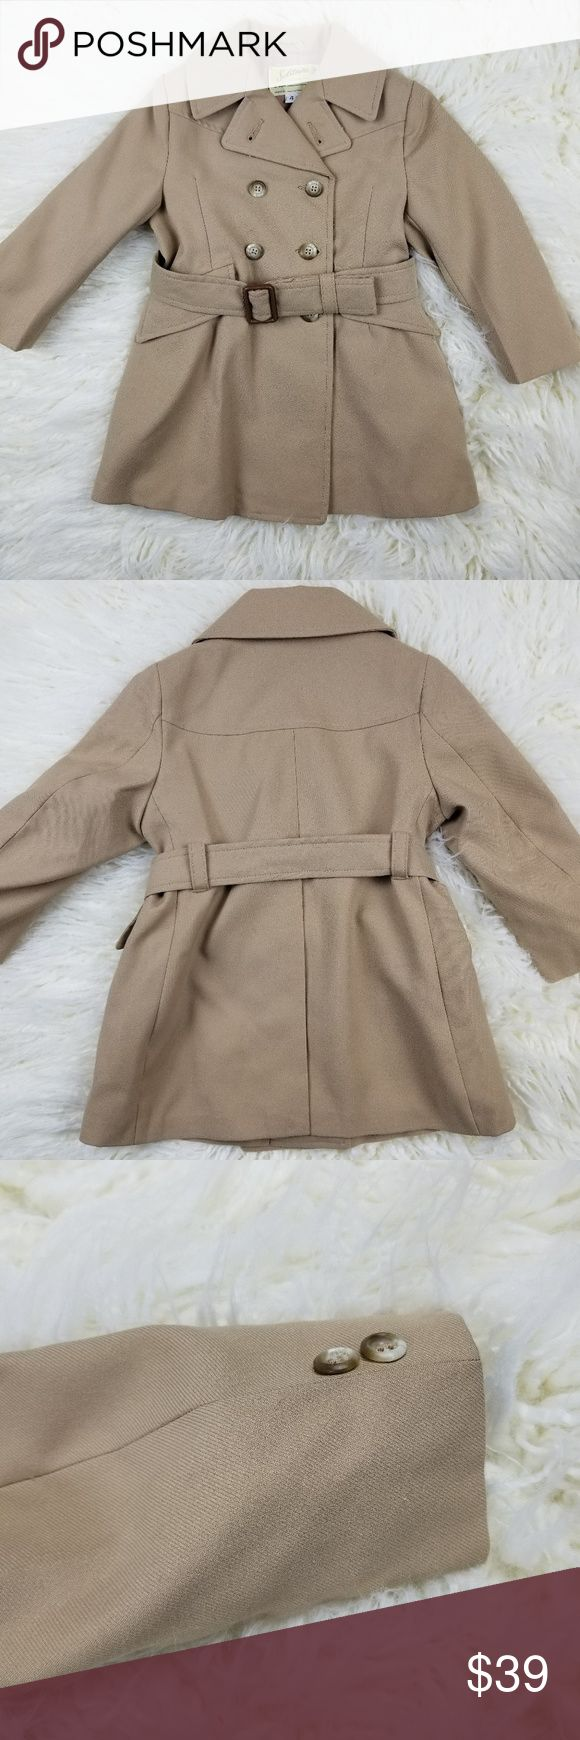 "VINTAGE Girls Trench Coat Solitaire Brand, Size 4 VINTAGE Girls Trench Coat Solitaire Brand, Size 4.  Stunning trench for your mini-me with all of the bells and whistles of the big coats.  Belted, pockets and lined.    Excellent, near mint condition.  No flaws noted.  This is a vintage size 4 so please double-check measurements for fit.    Measurements are approximate and taken with the garment lying flat & unstretched:  Shoulder seam to shoulder seam:  10.5""  Armpit to armpit:  13.5""…"